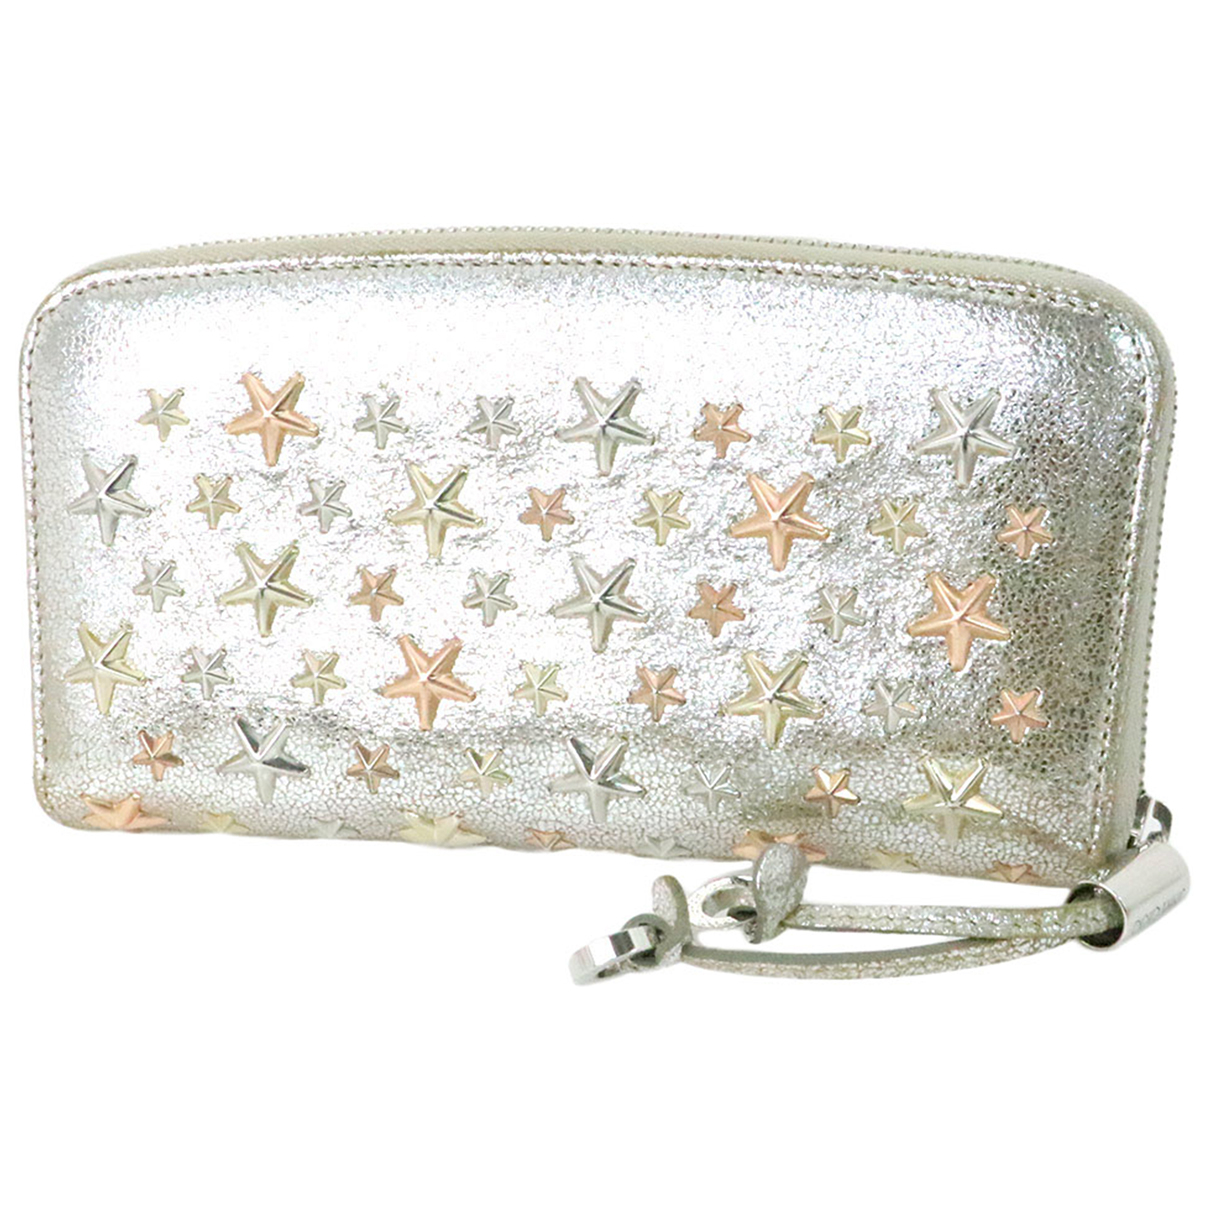 Jimmy Choo N Leather wallet for Women N